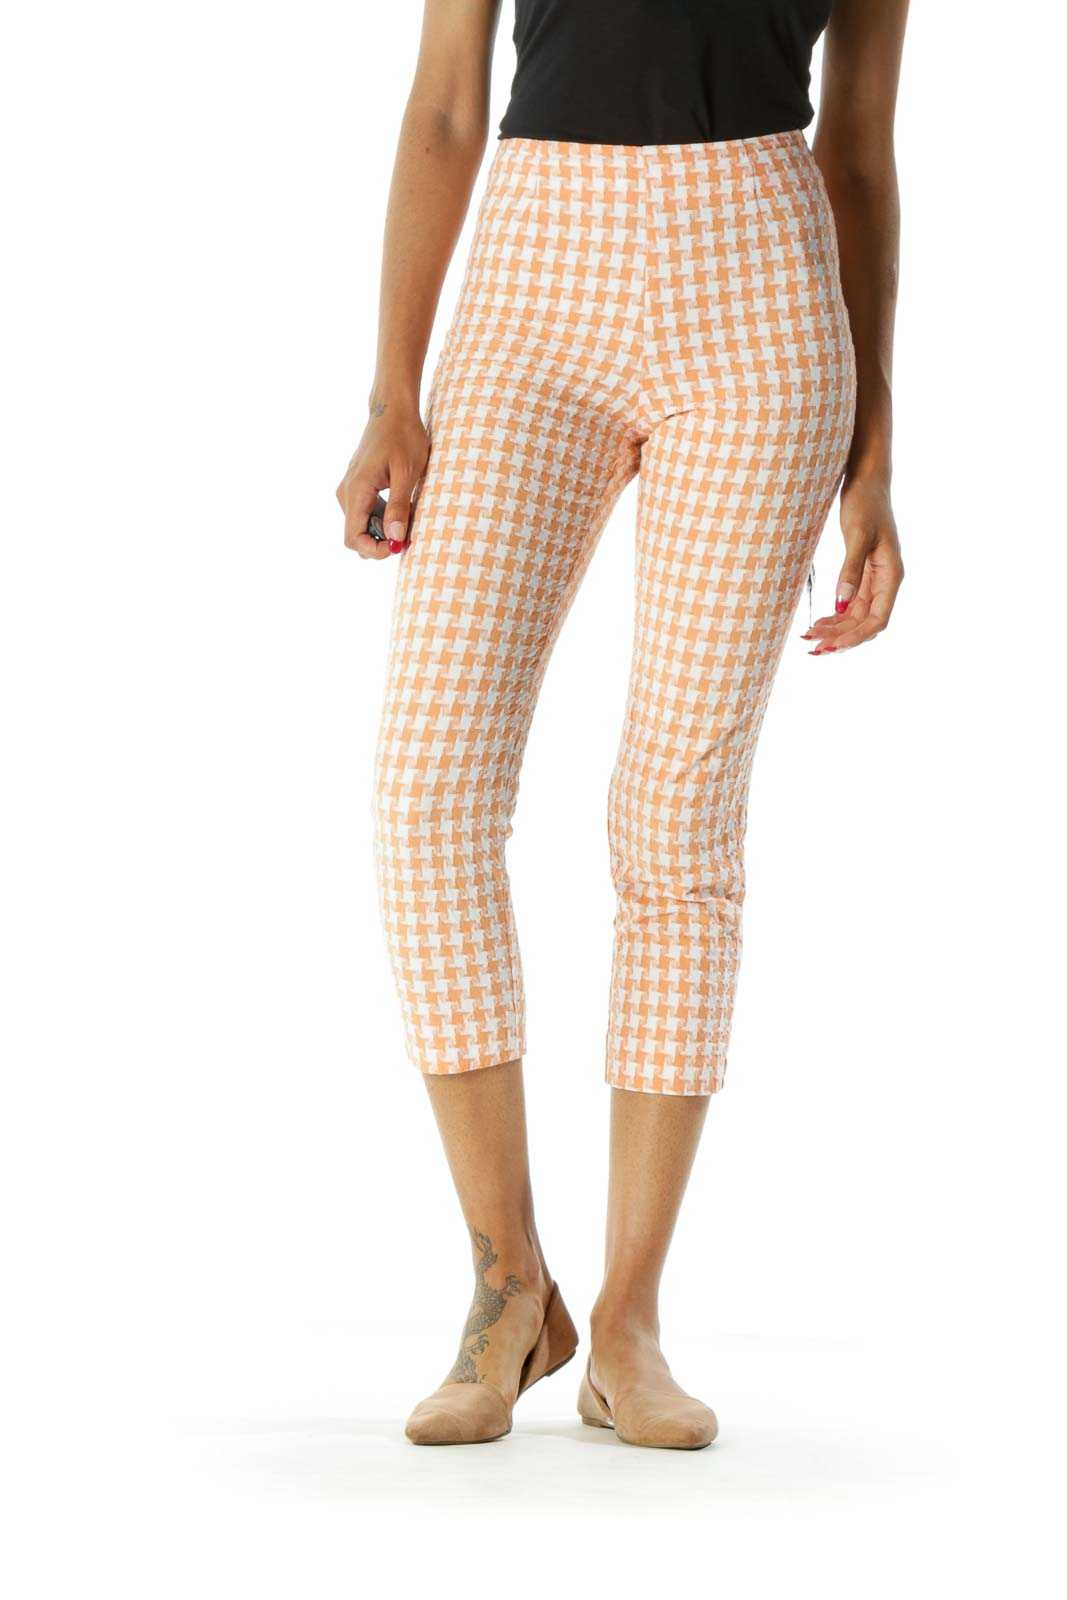 Orange White Houndstooth Knit Pattern Pants